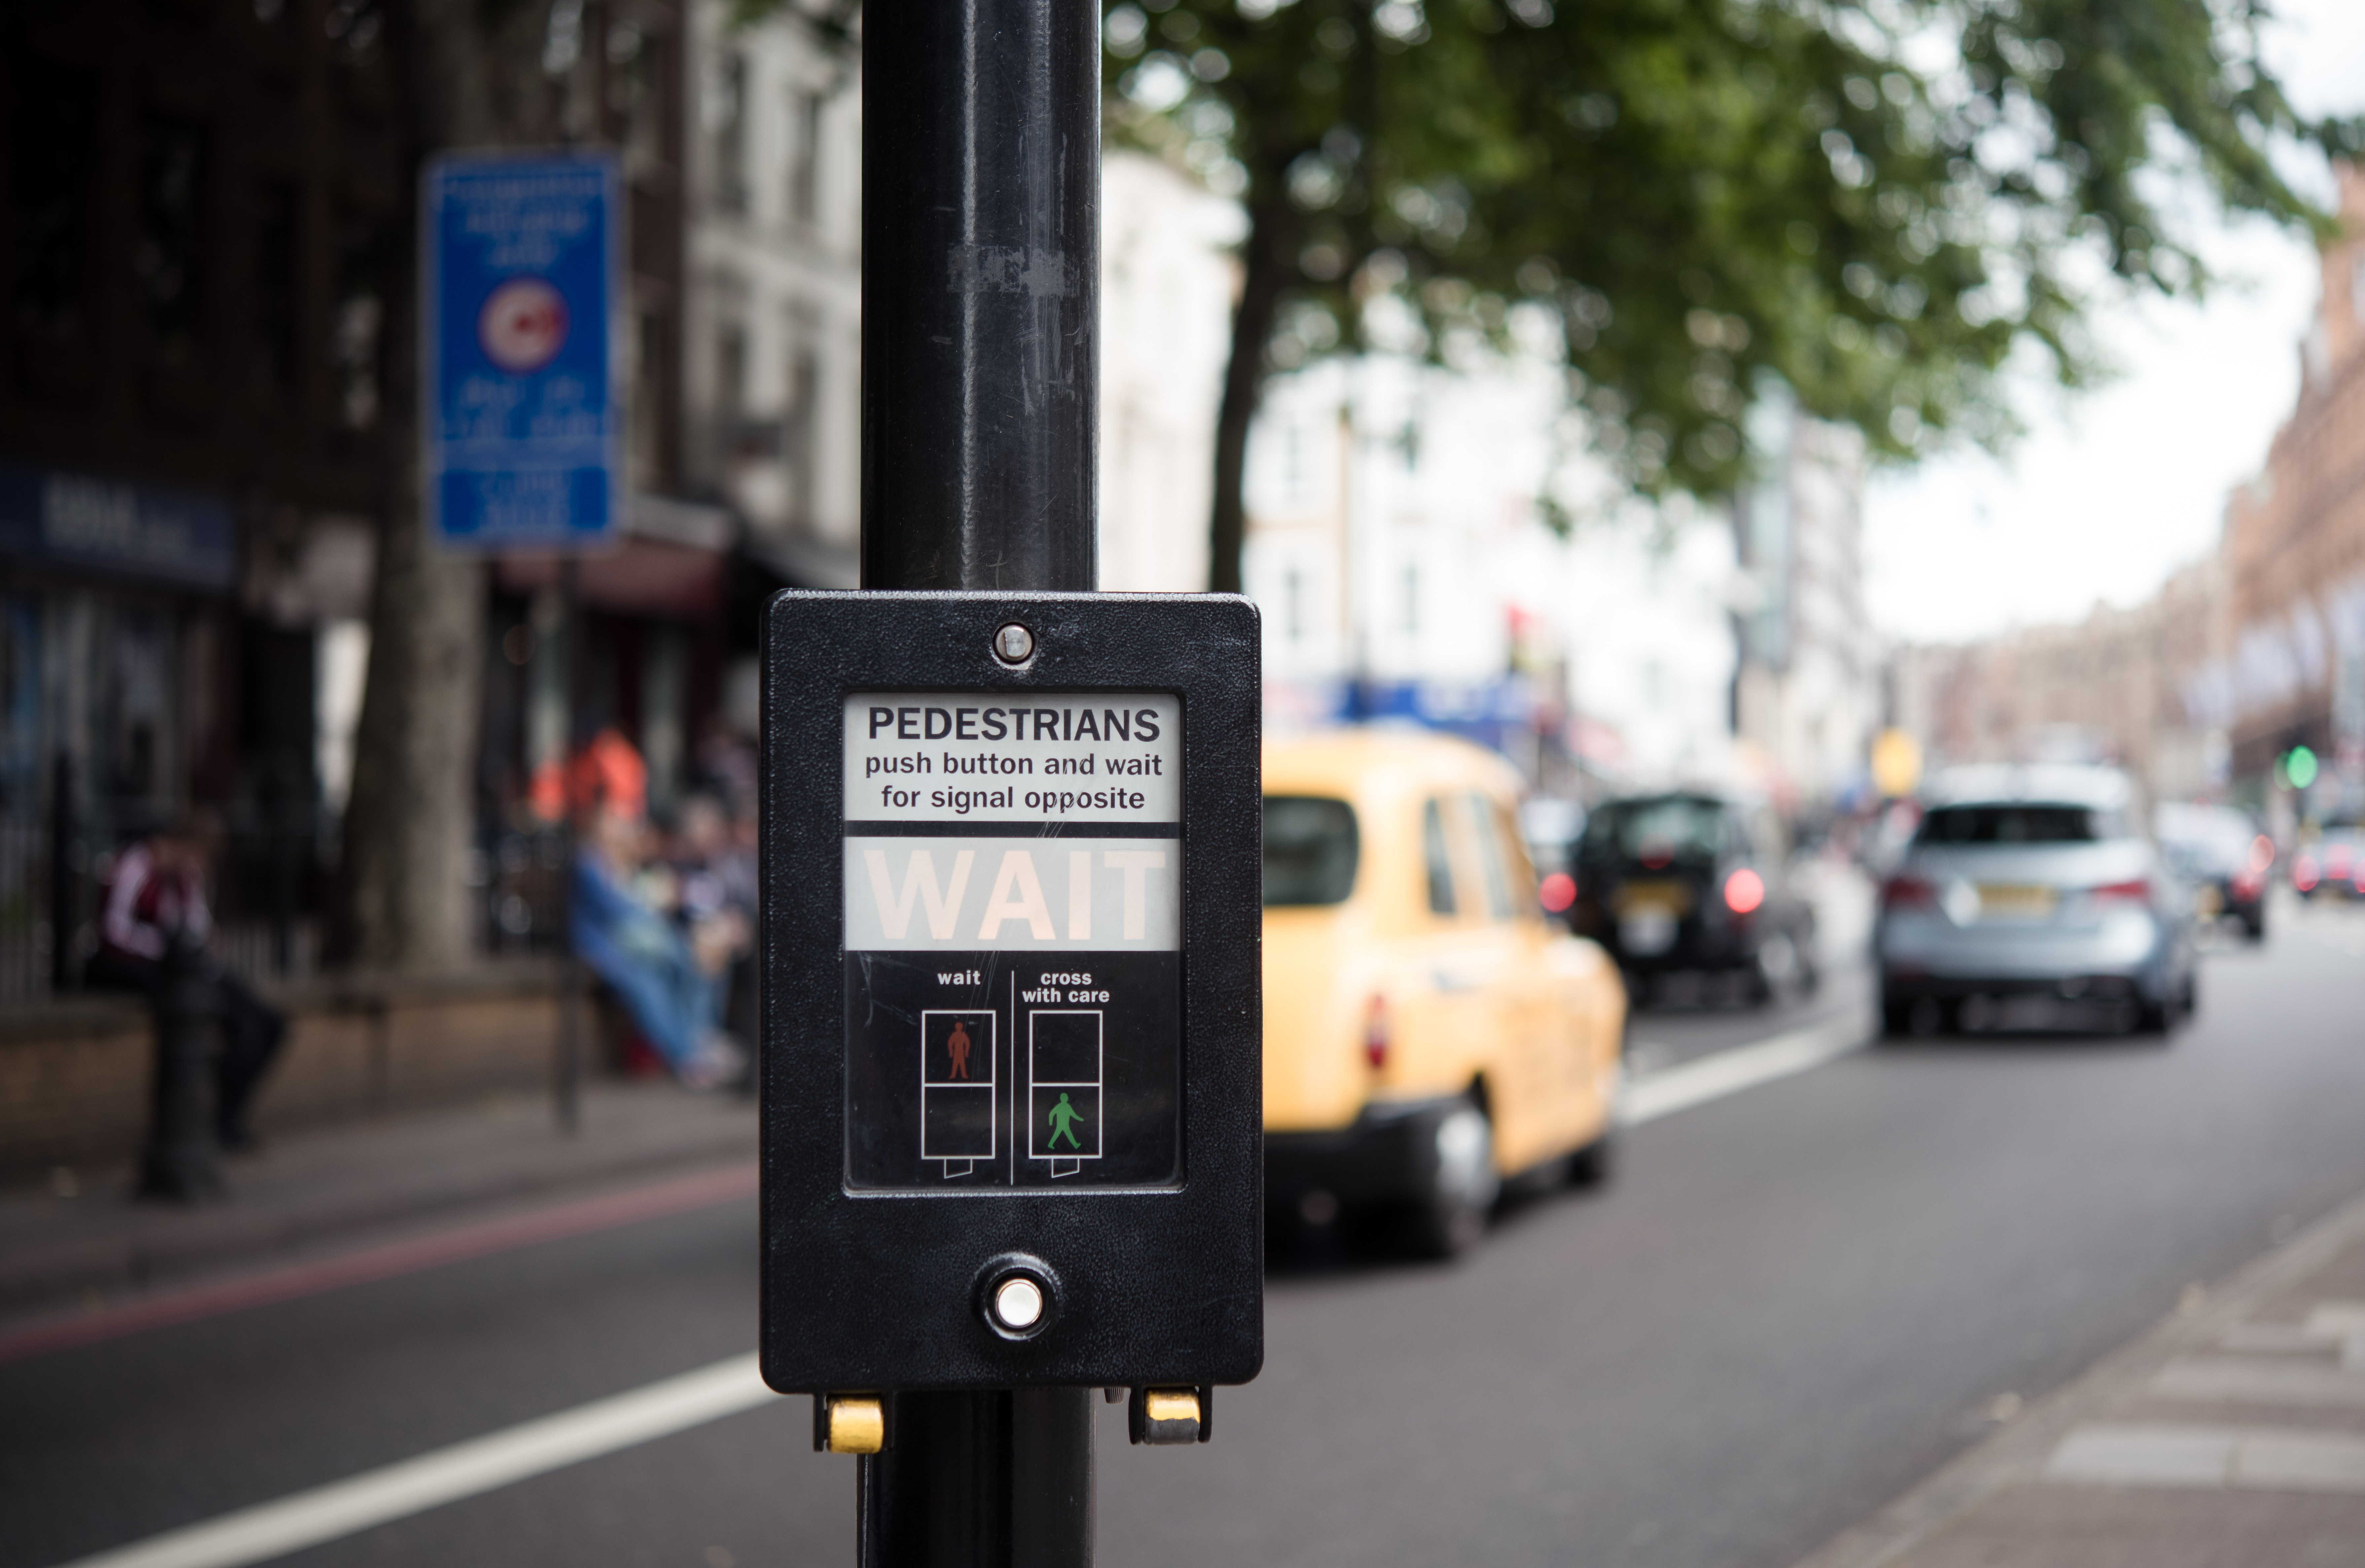 Pedestrian crosswalk button on a busy street in London